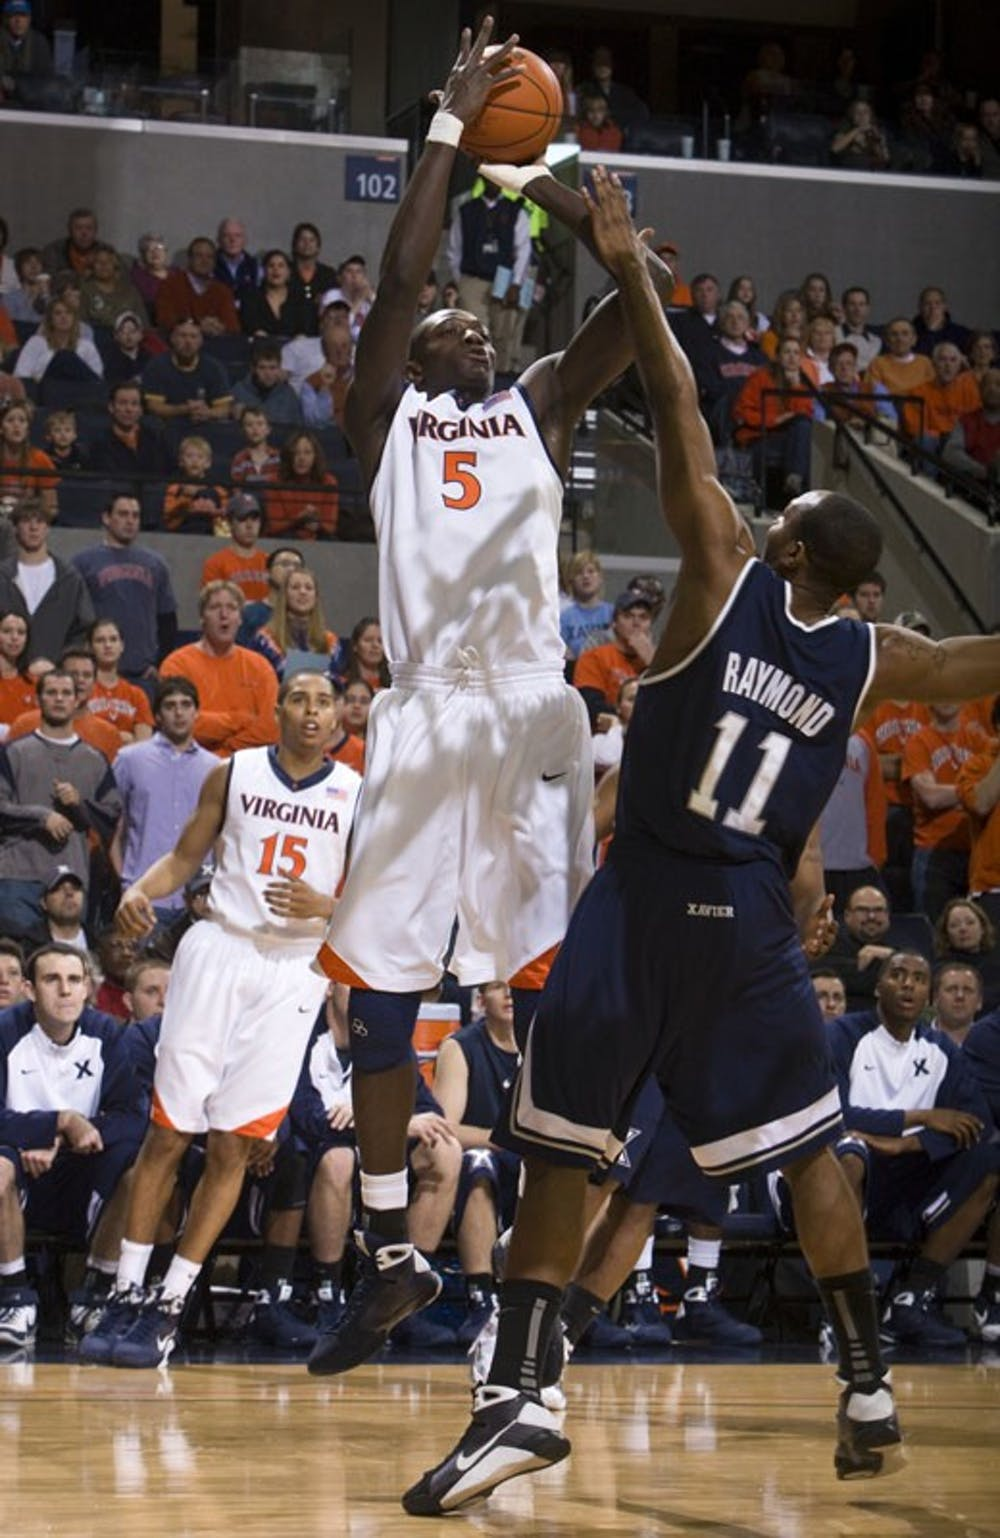 Virginia center Assane Sene (5) shoots a fadeaway jump shot over Xavier guard/forward B.J. Raymond (11).  The #22 ranked Xavier Musketeers defeated the Virginia Cavaliers 84-70 at the John Paul Jones Arena on the Grounds of the University of Virginia in Charlottesville, VA on January 3, 2009.